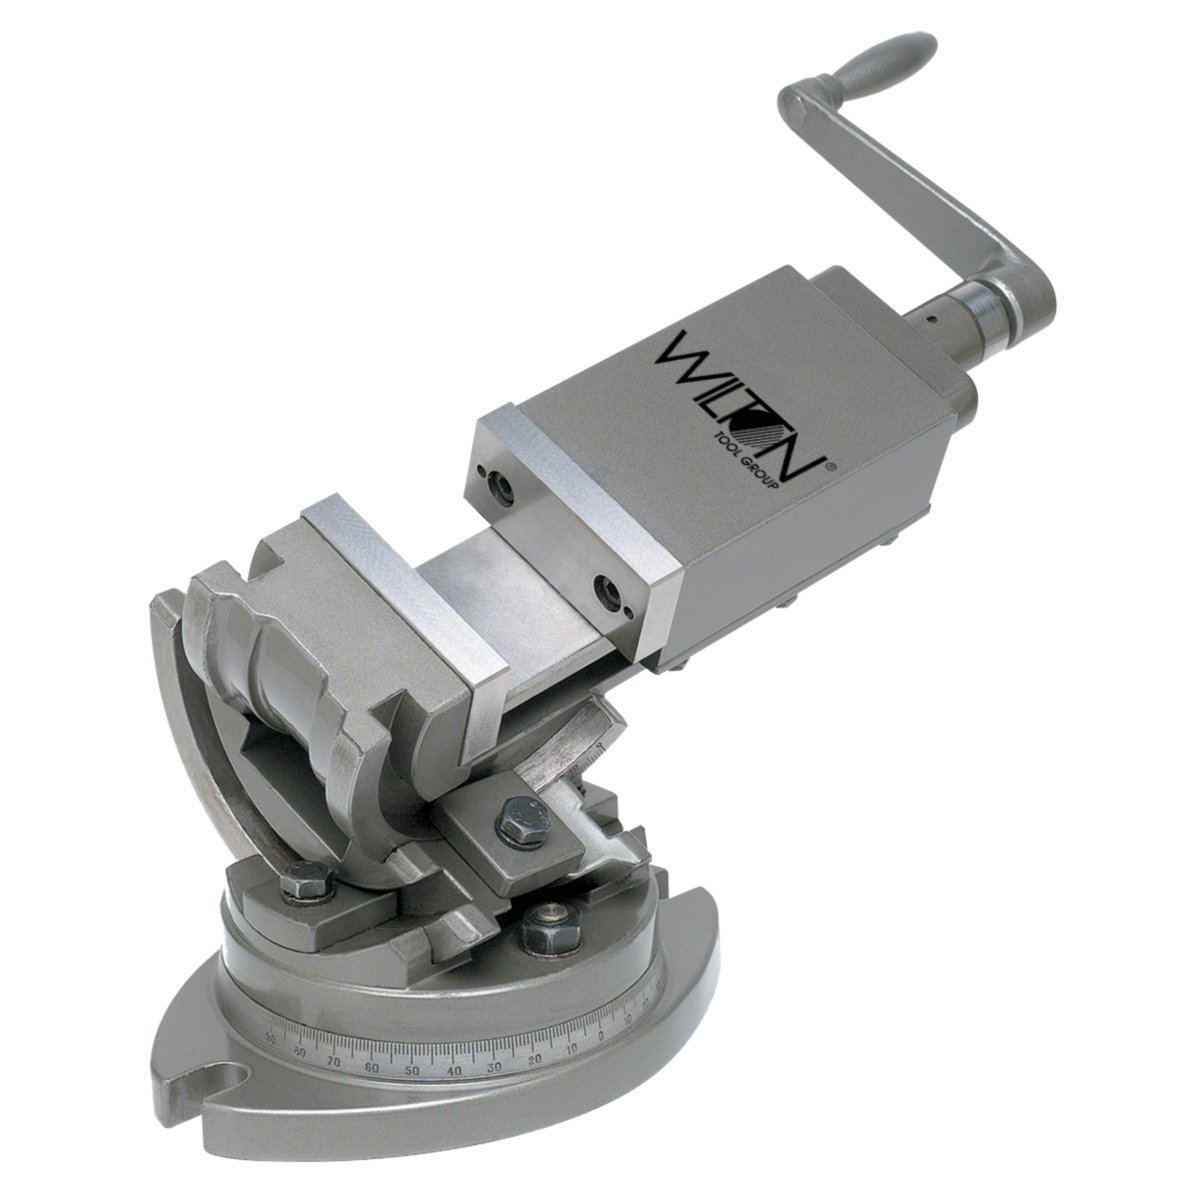 Wilton 11804 3-Axis Precision Tilting Vise 6-Inch Jaw Width, 1-3/4-Inch Depth by Wilton